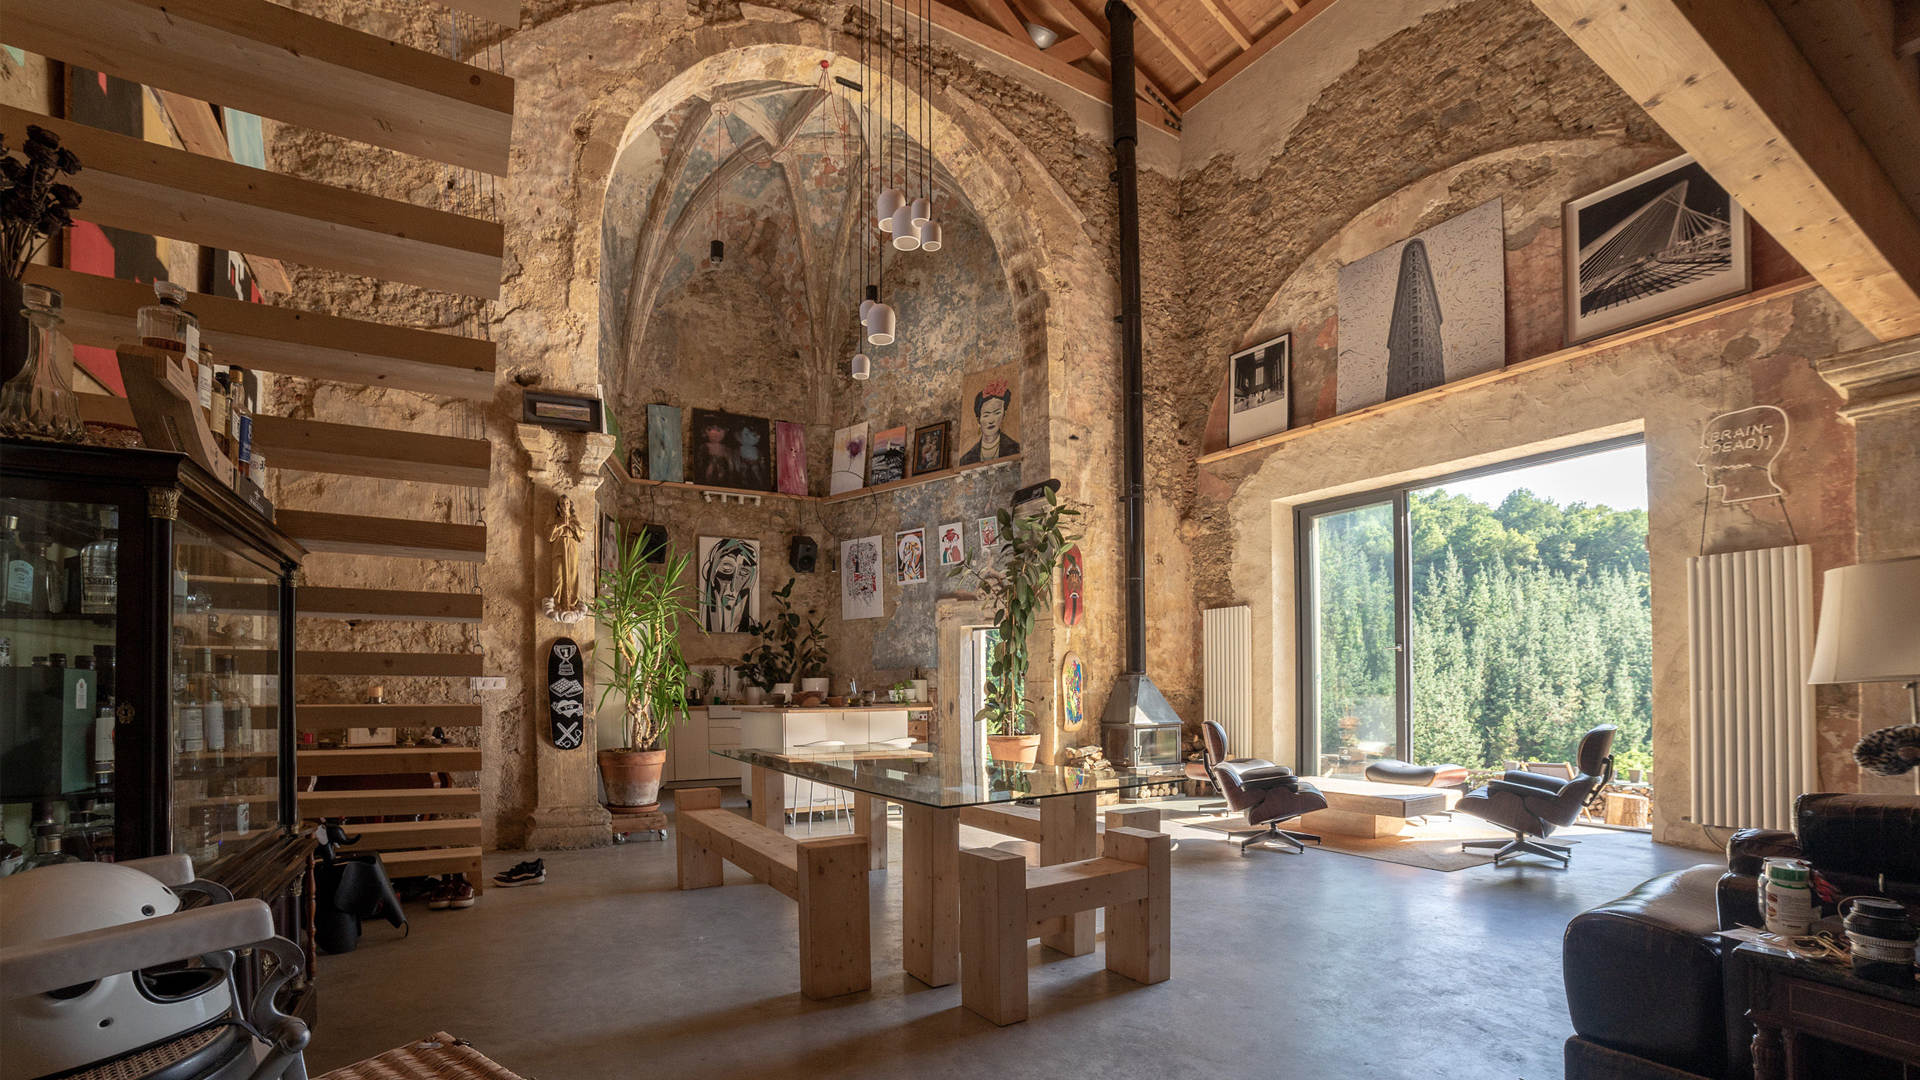 Pew'd Have Thought It? Designer Turns Wrecked USD 25,000 Church Into Dream Home